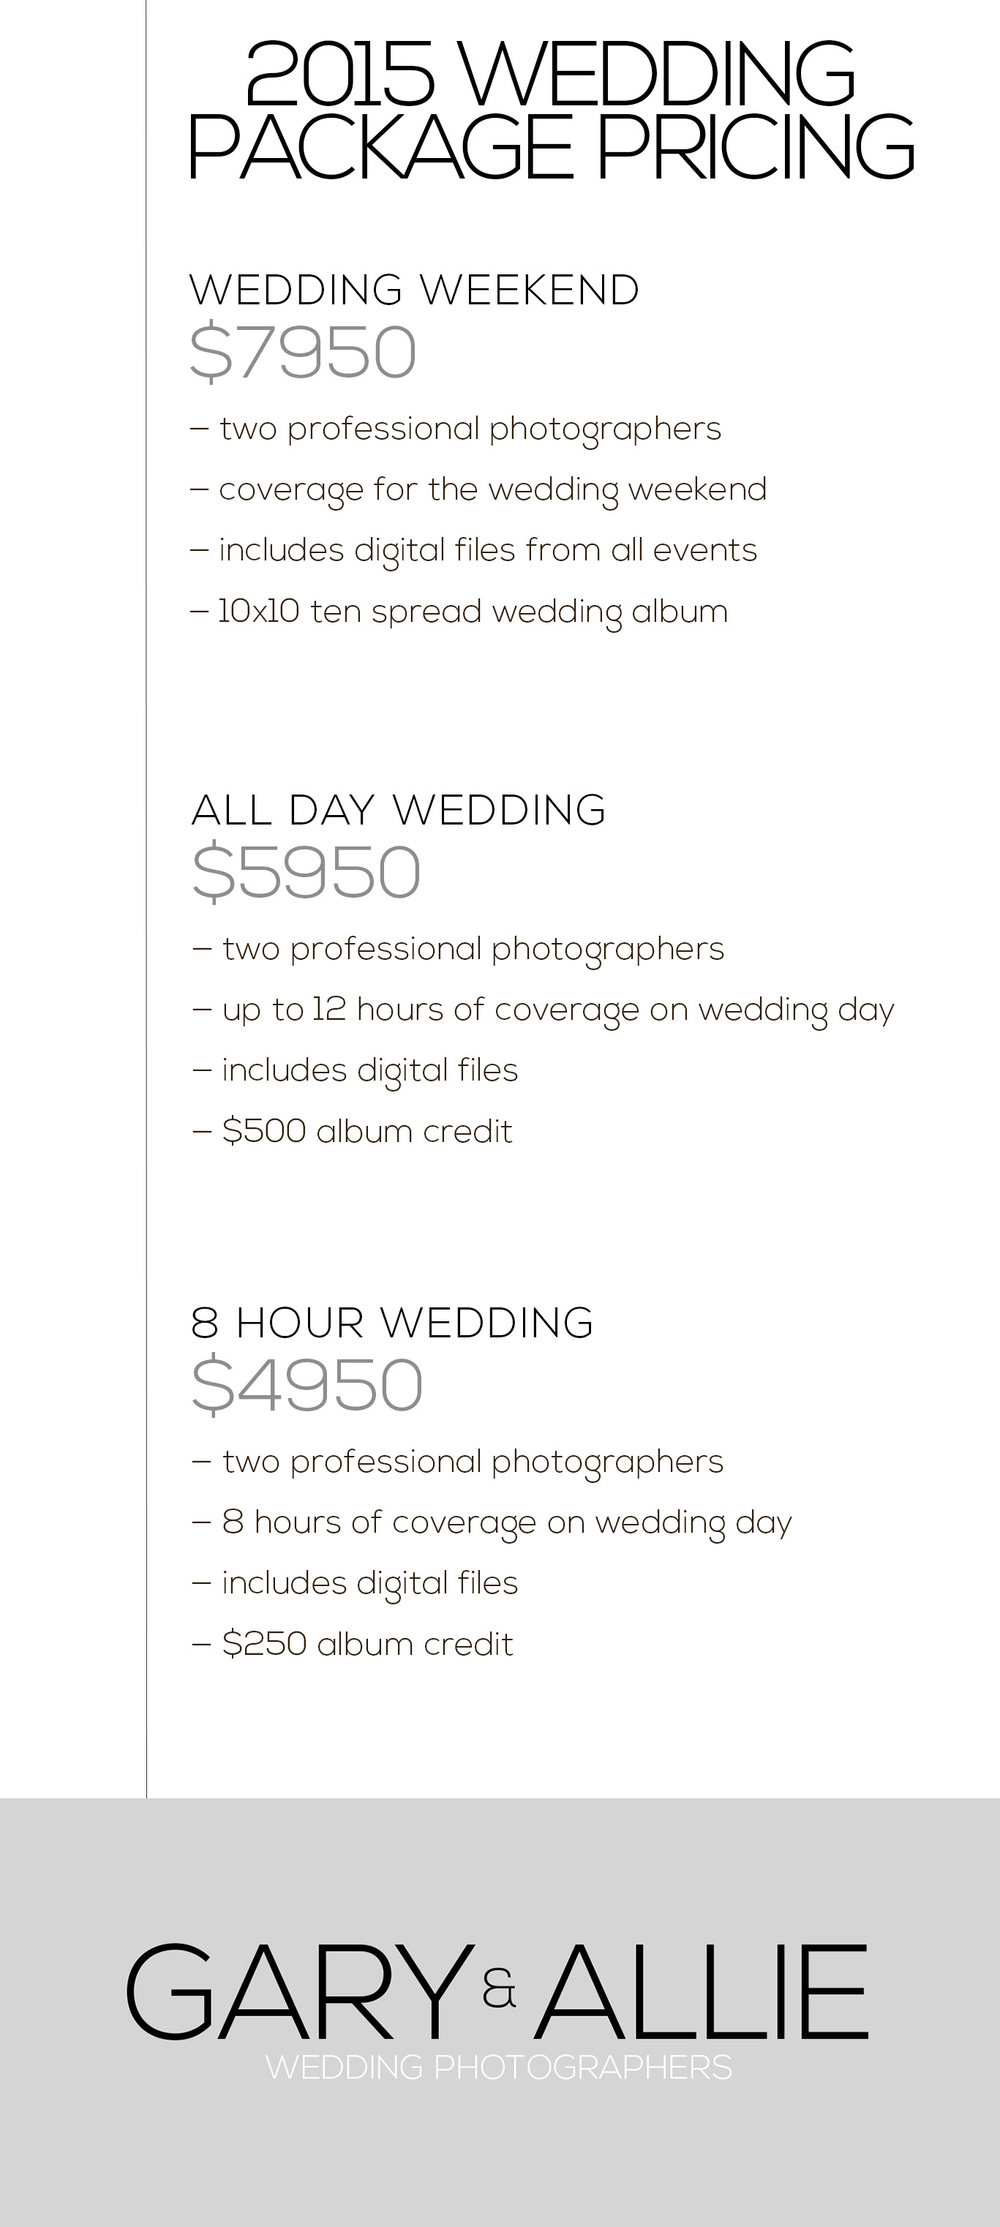 pricing sheet gary and allie wedding photography 2016 12-23-15.jpg